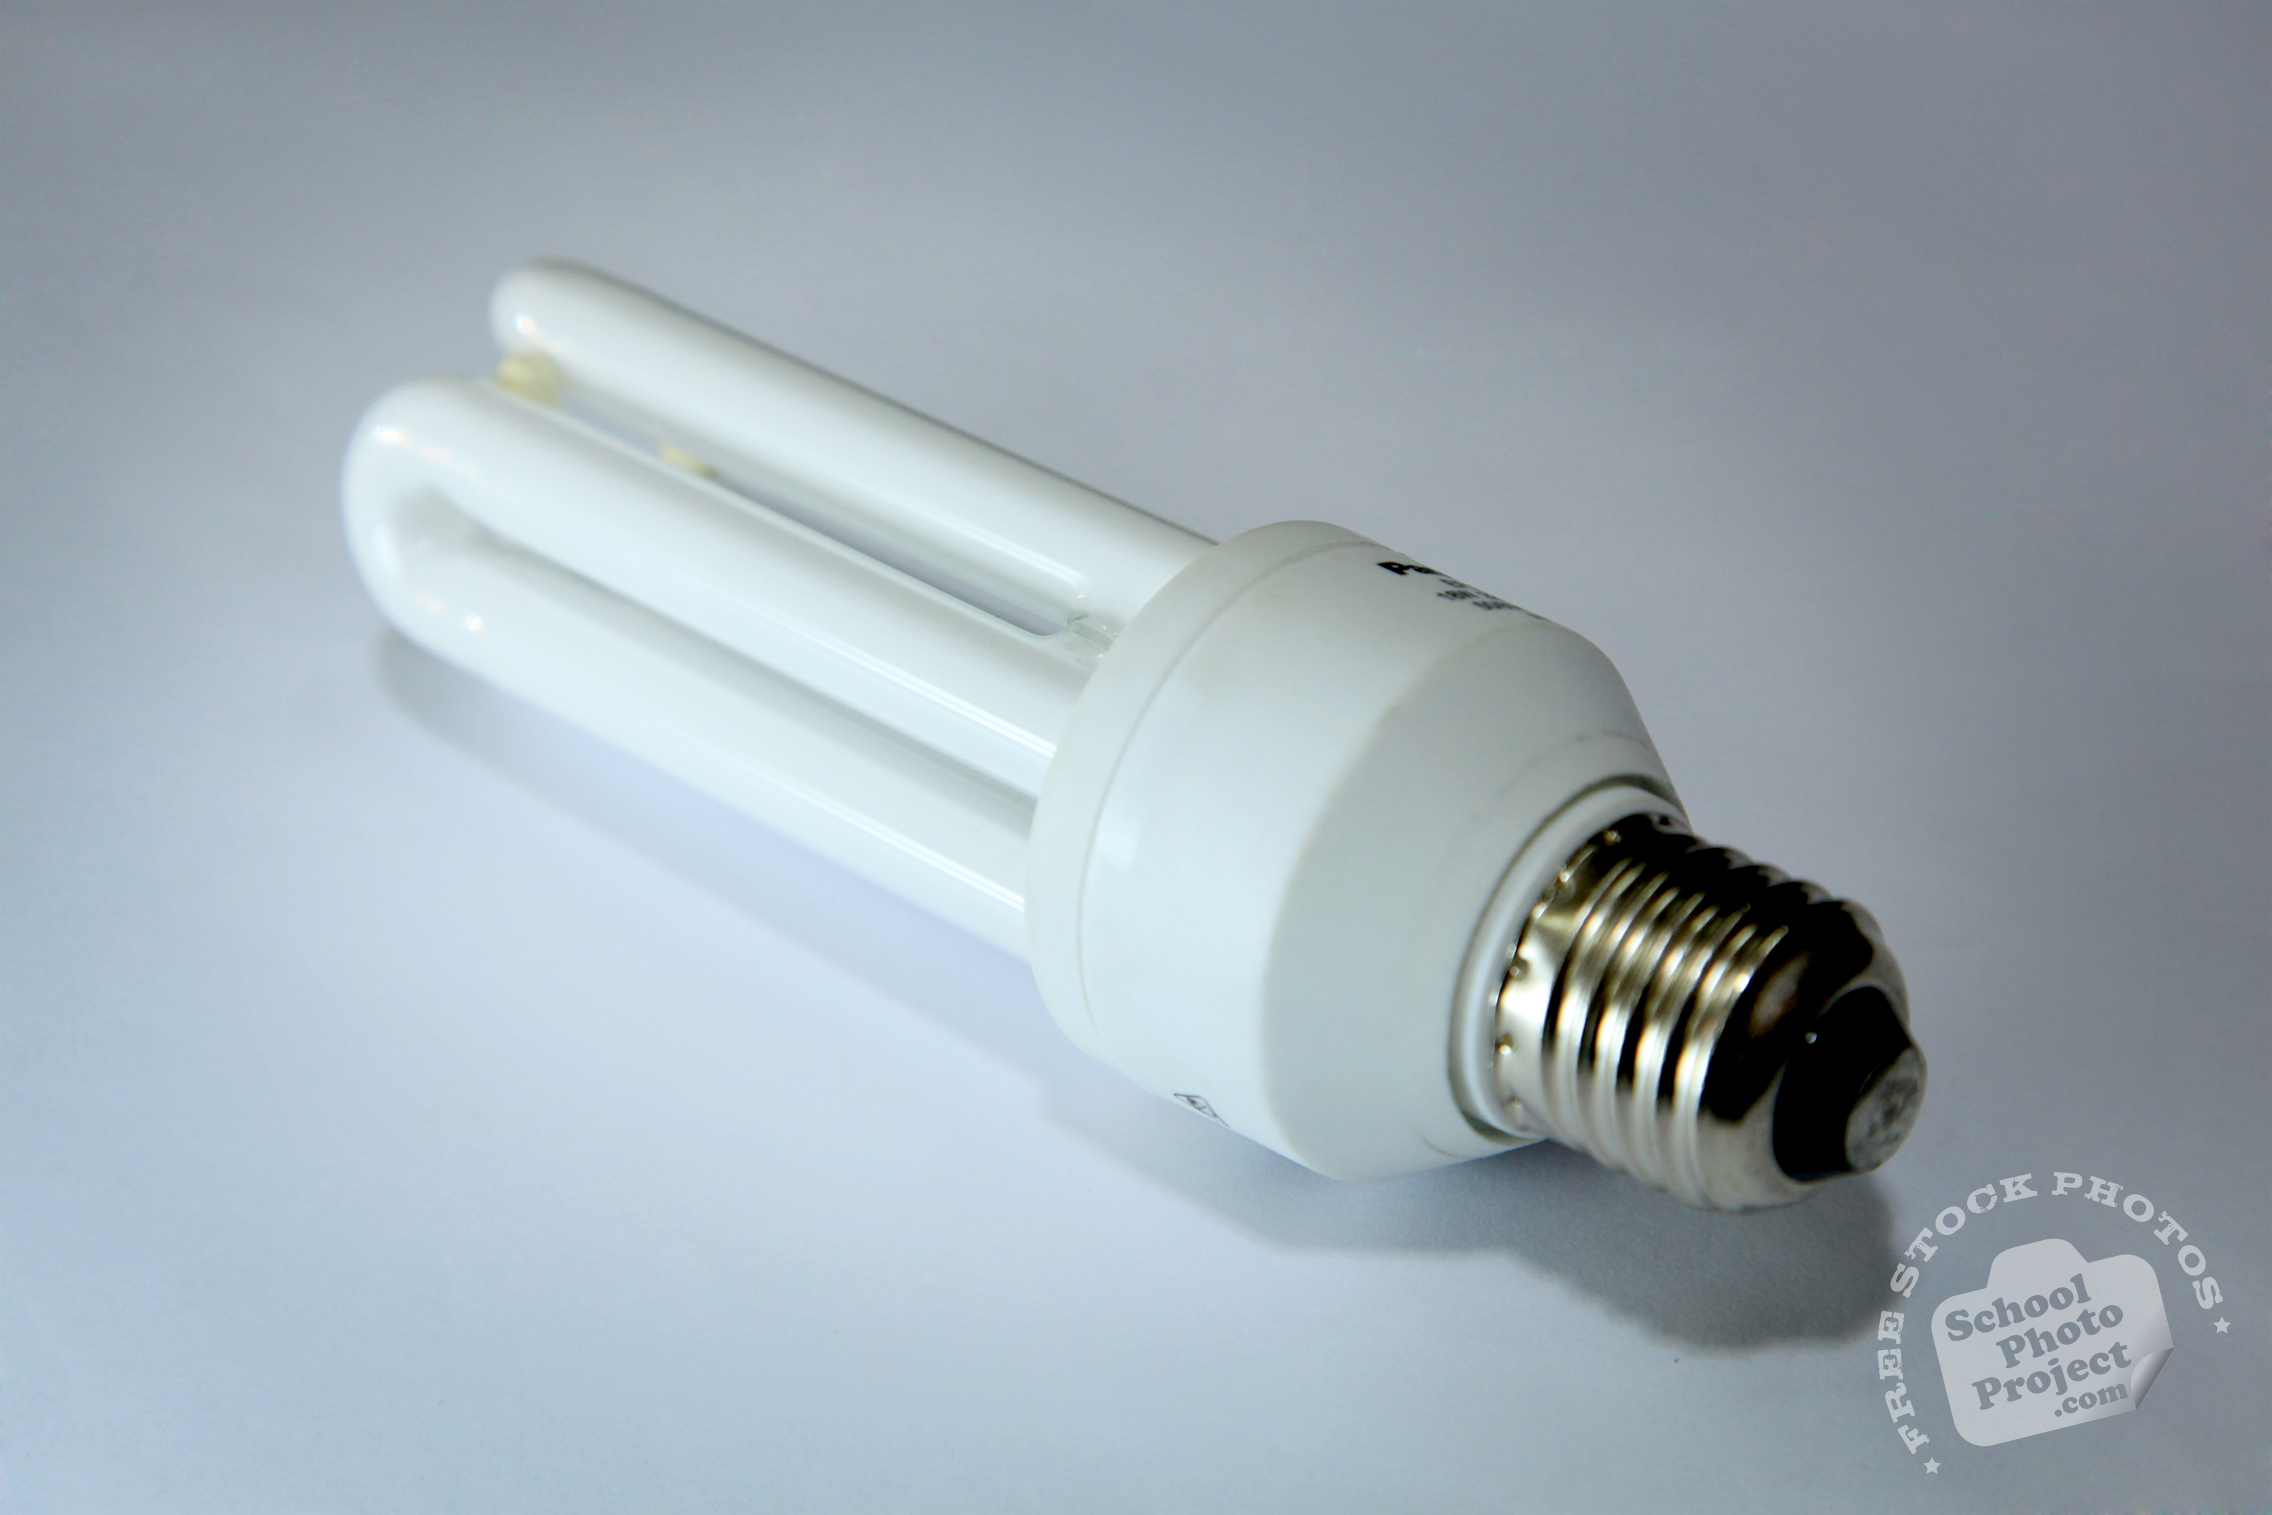 Cfl Light Bulb Free Stock Photo Image Picture Compact Fluorescent Lamp Royalty Free Daily